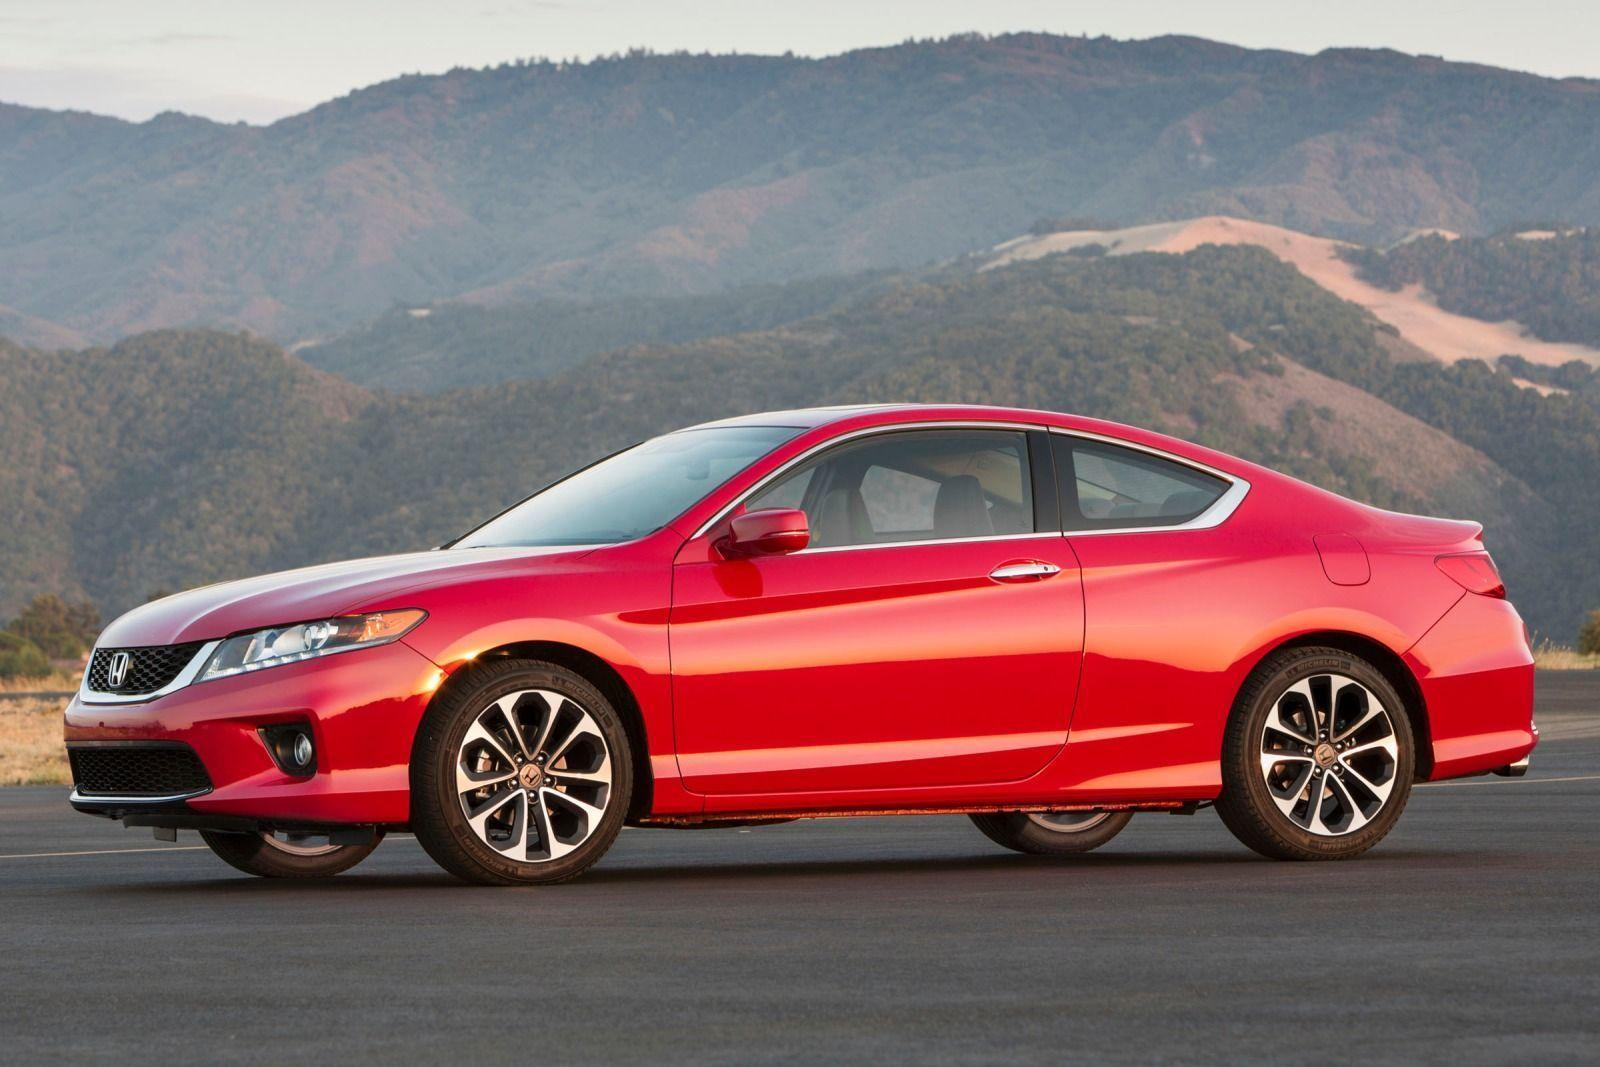 2015 honda accord coupe wallpapers wallpaper cave. Black Bedroom Furniture Sets. Home Design Ideas